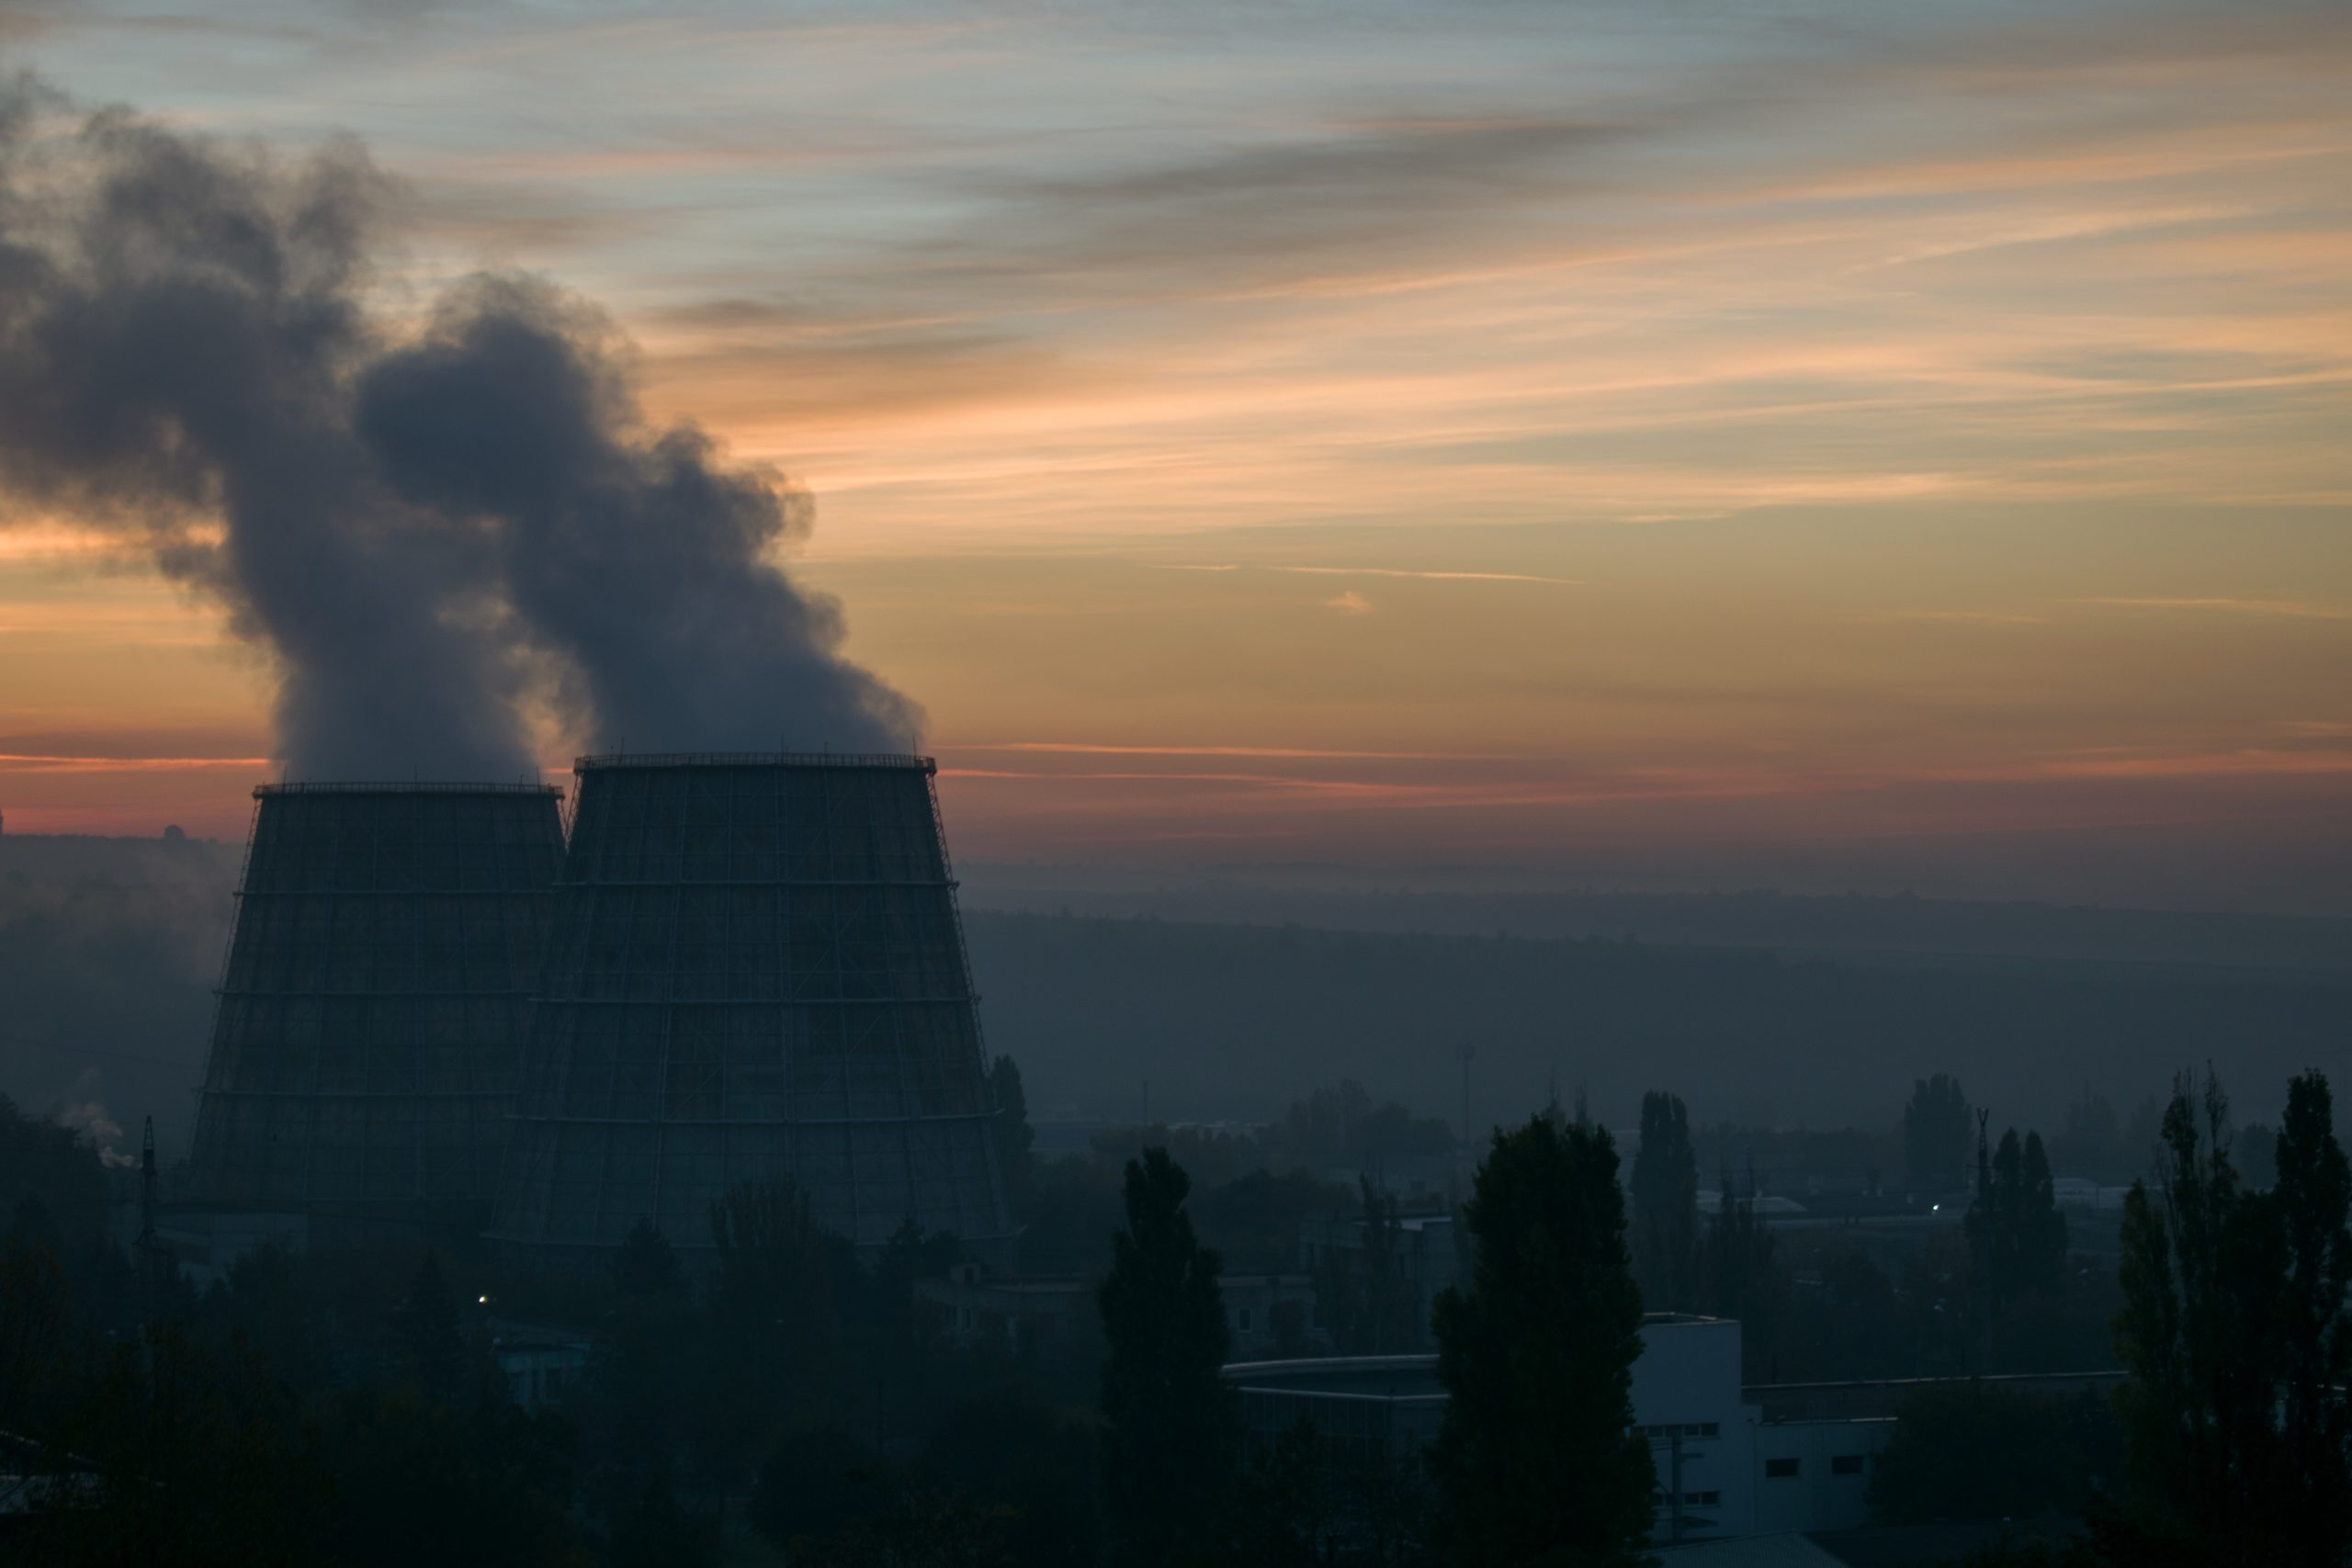 Image of cooling towers against horizon